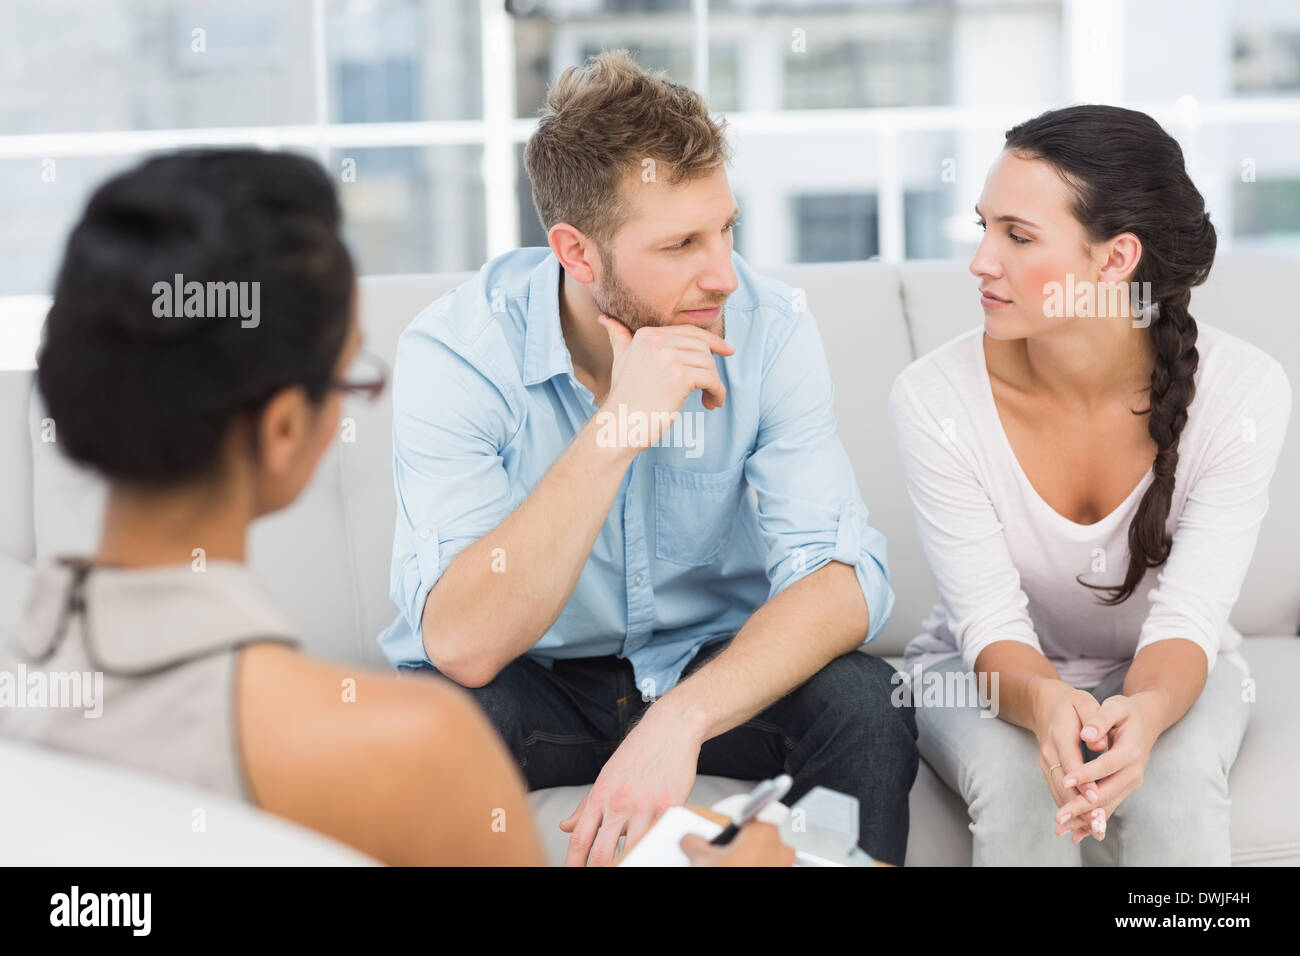 Unhappy couple at therapy session - Stock Image